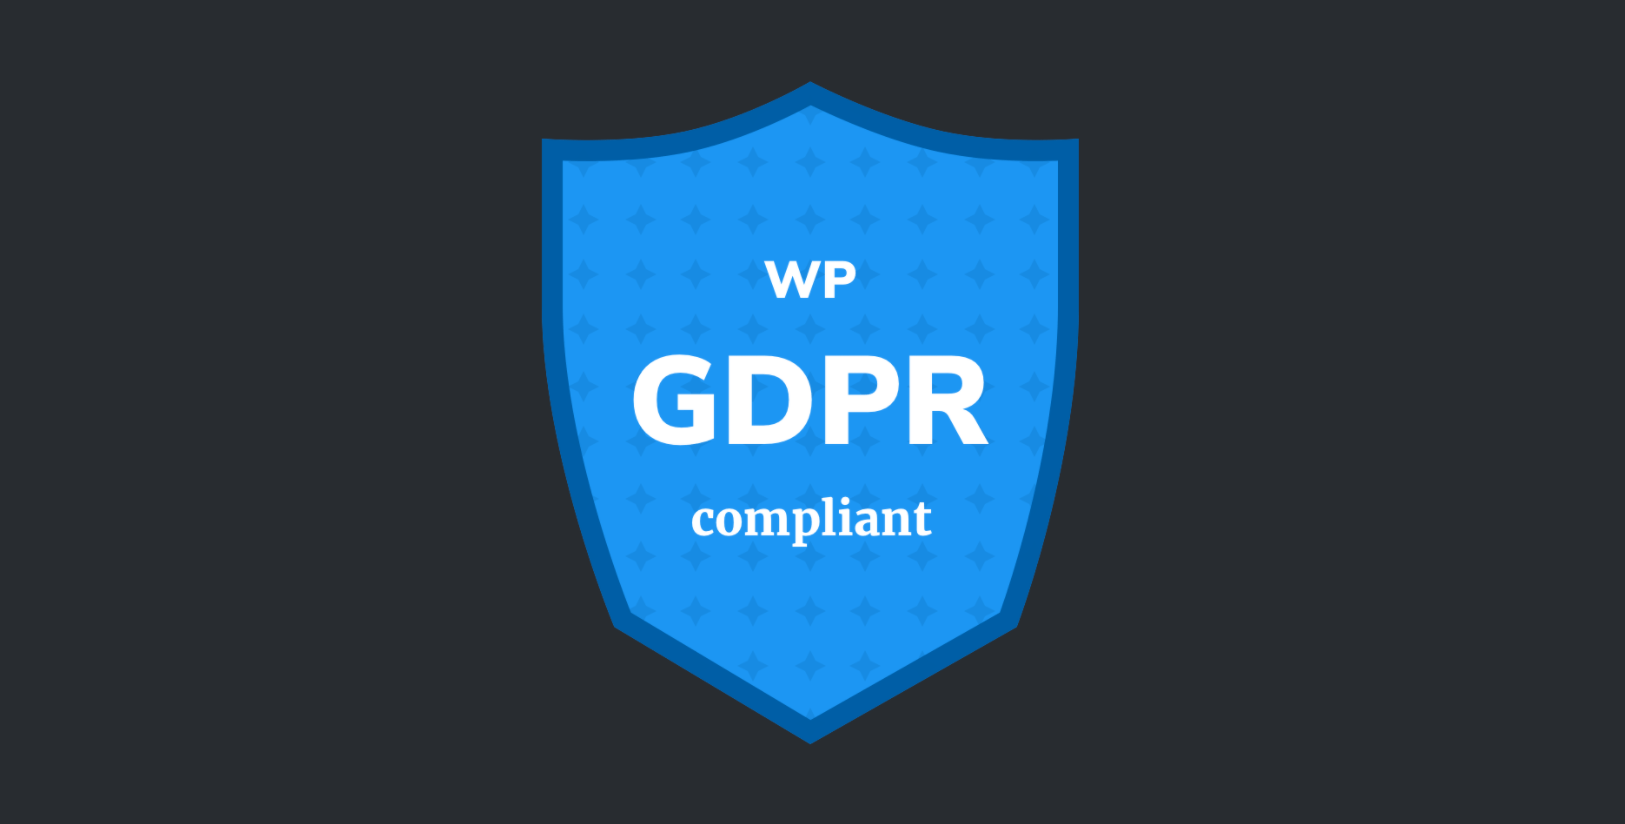 wordcamp denmark organizer kare mulvad steffensen and wp pusher creator peter suhm are working on a gdpr for wordpress project that aims to provide an